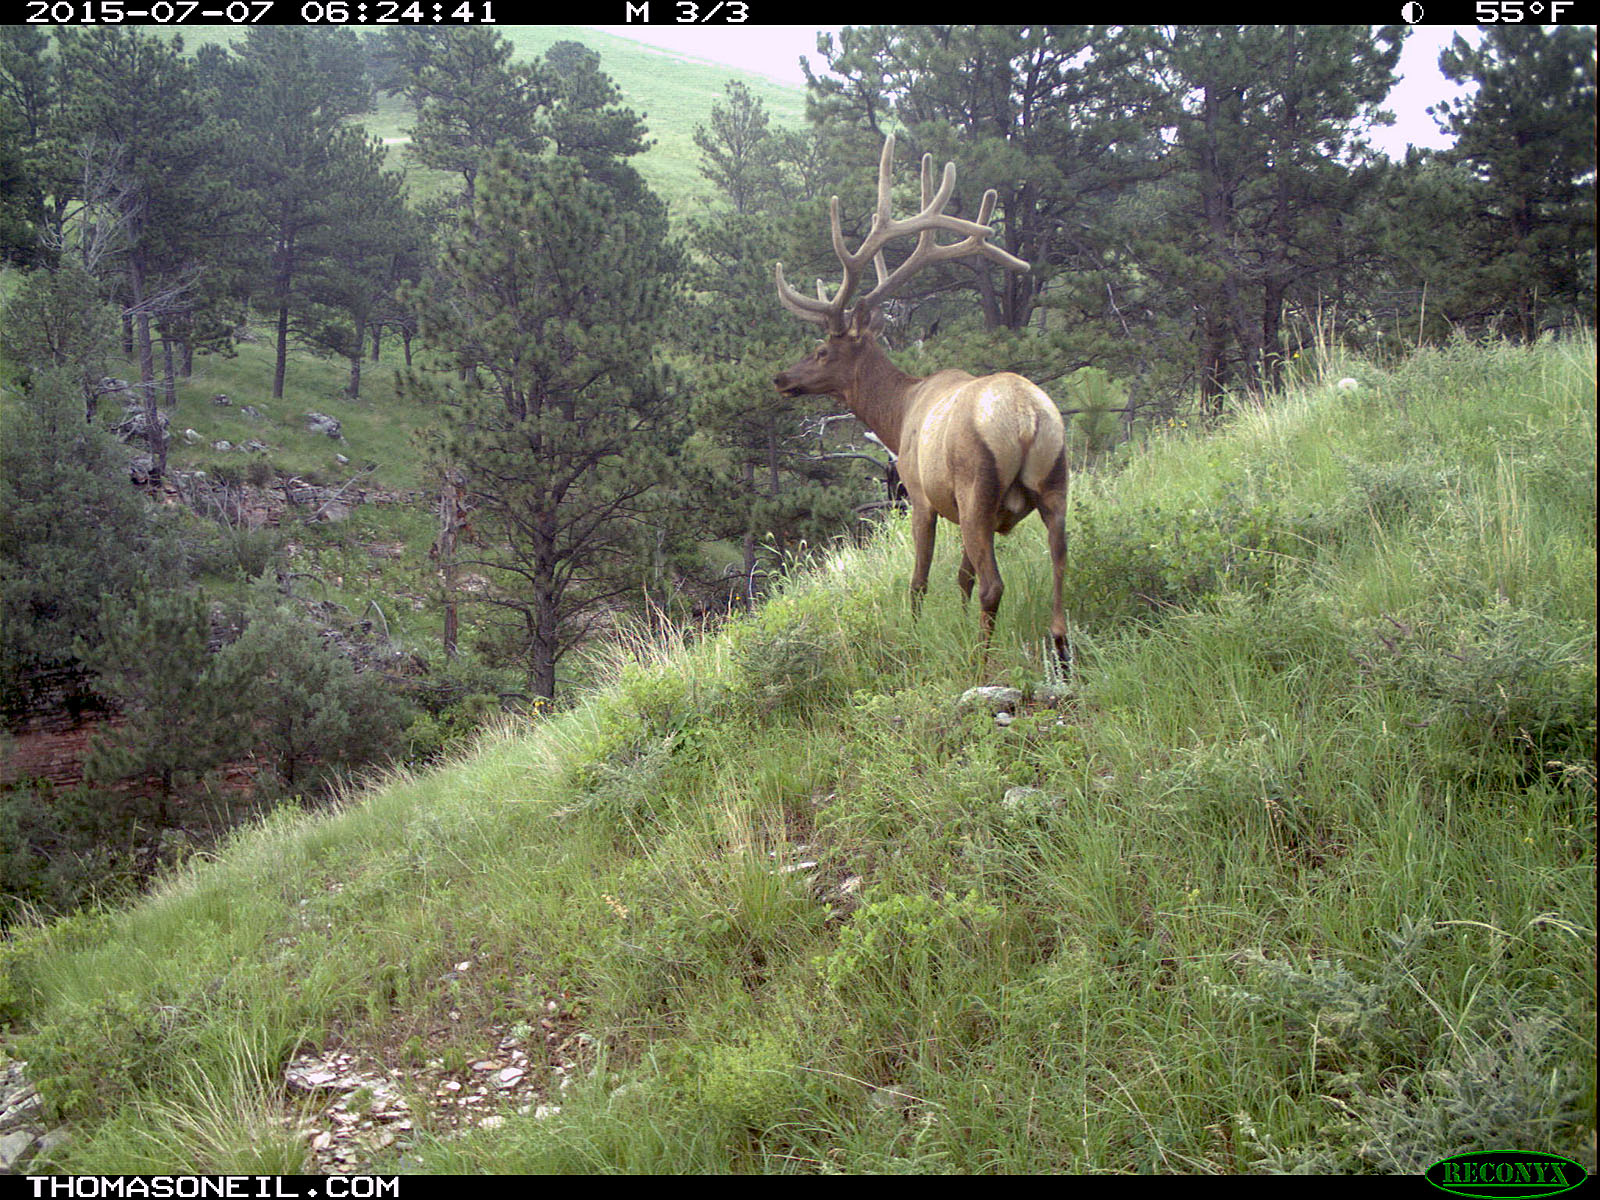 Elk scratching sequence on trailcam, 1 of 7, Wind Cave National Park, July 2015,